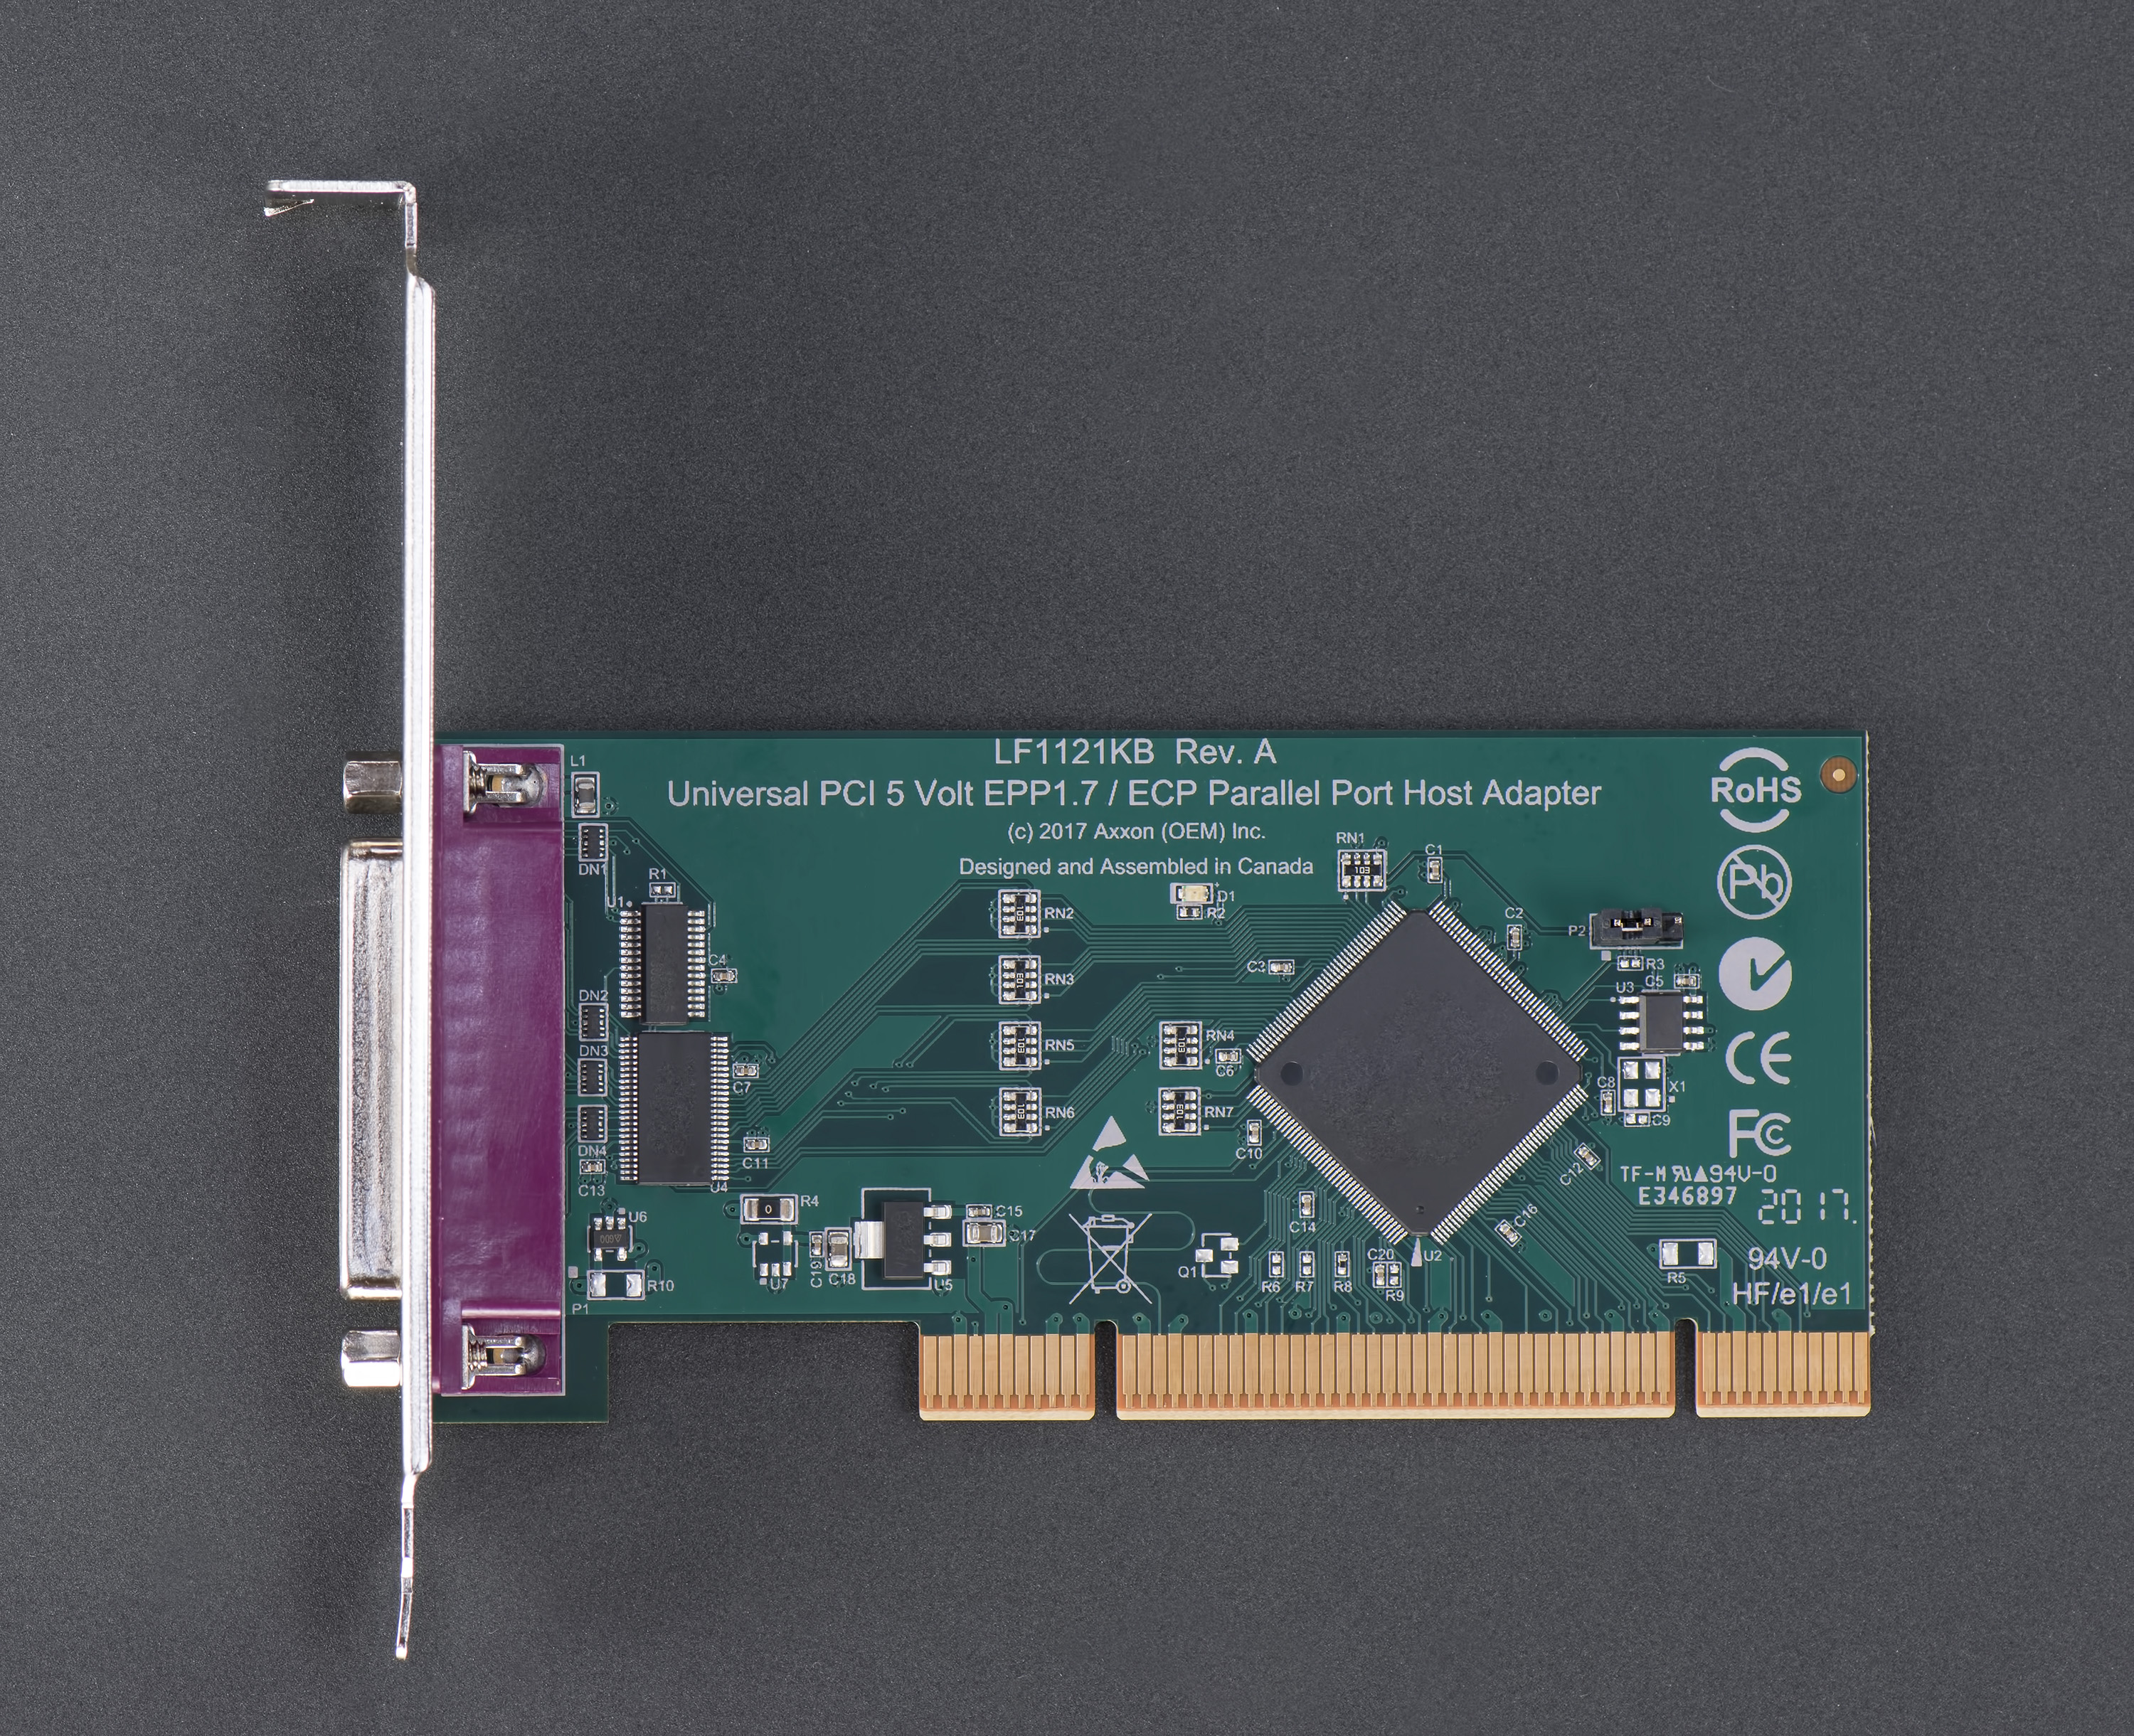 LF1121KB Universal PCI Bus 5 volt Parallel Port Host Adapter